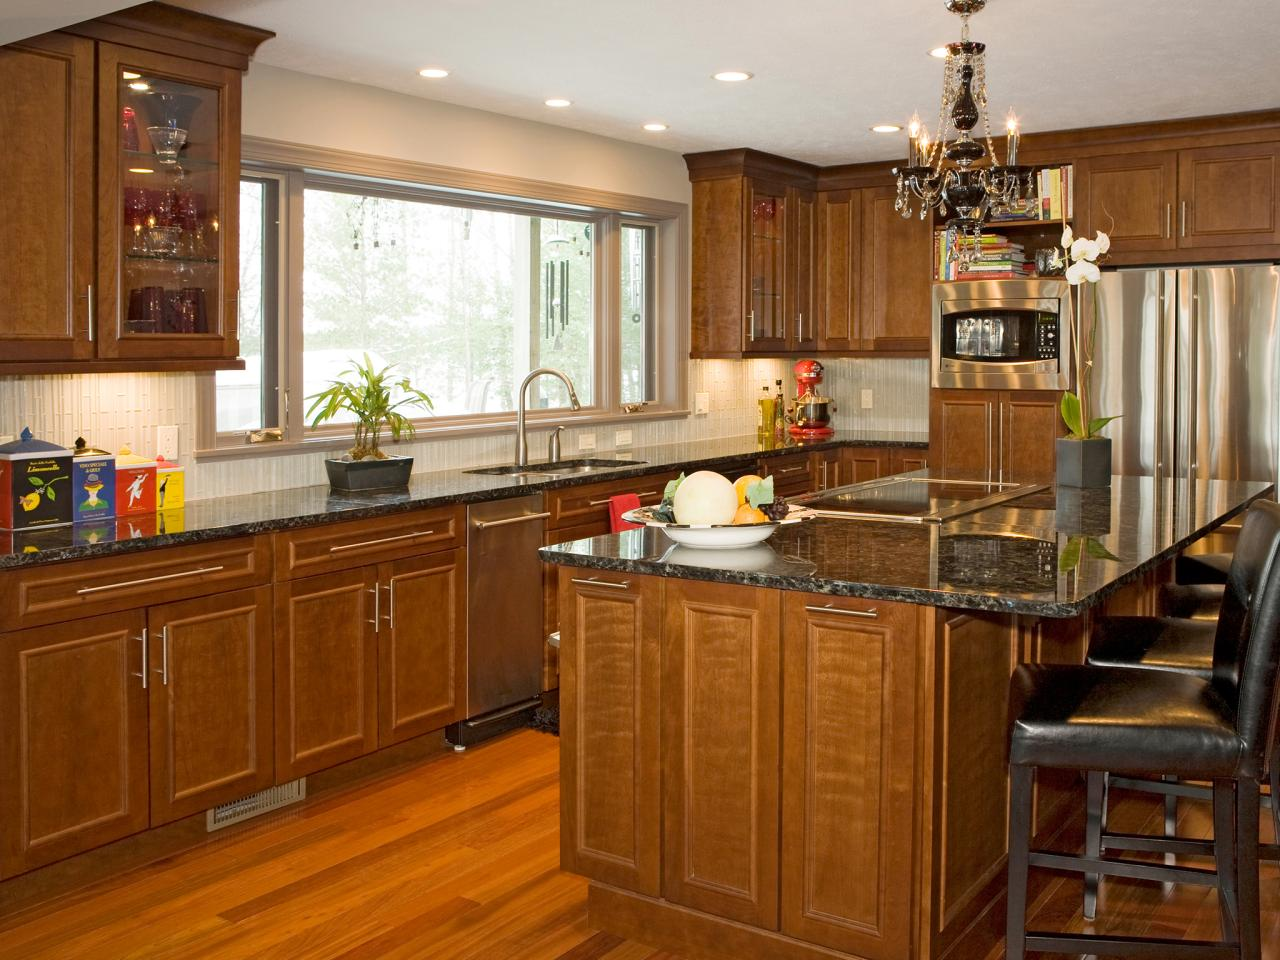 Kitchen Design Ideas With Oak Cabinets cherry kitchen cabinets: pictures, options, tips & ideas | hgtv